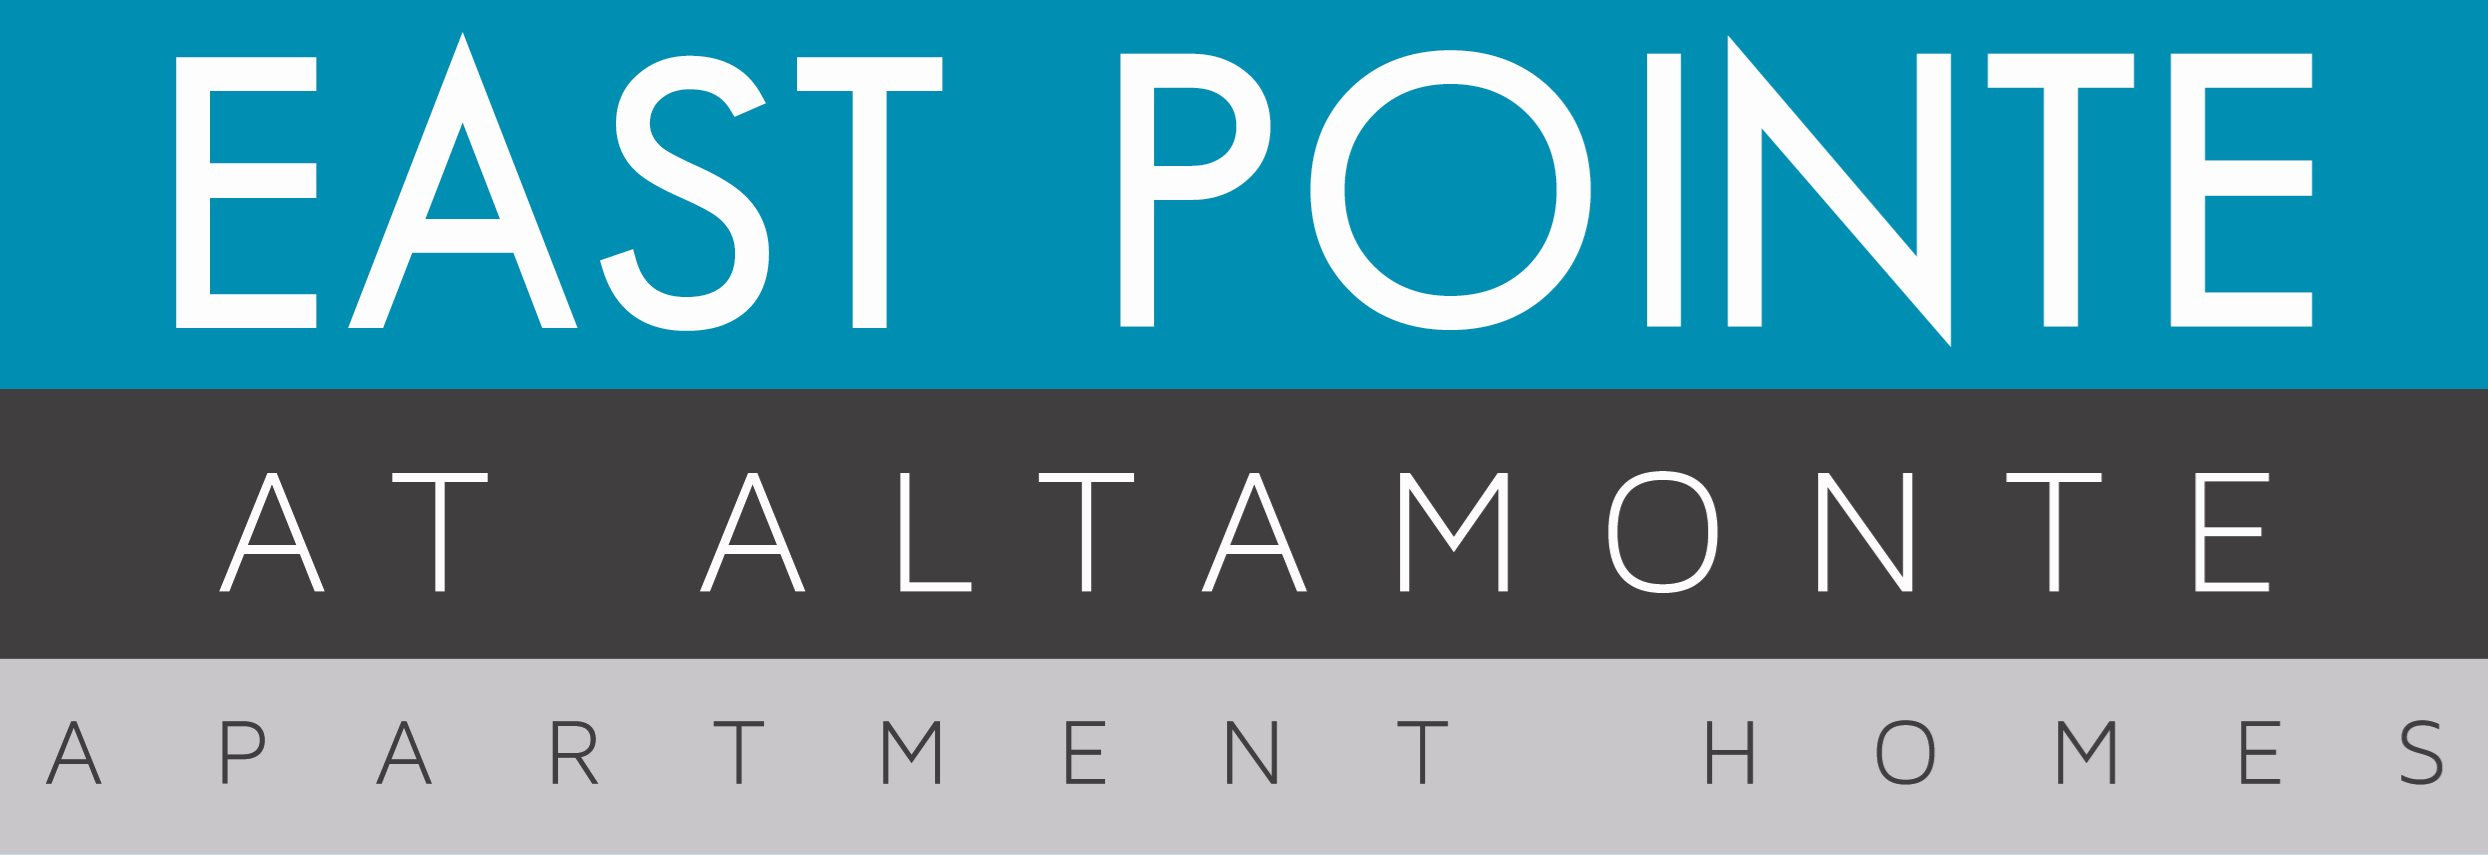 East Pointe at Altamonte Property Logo 29